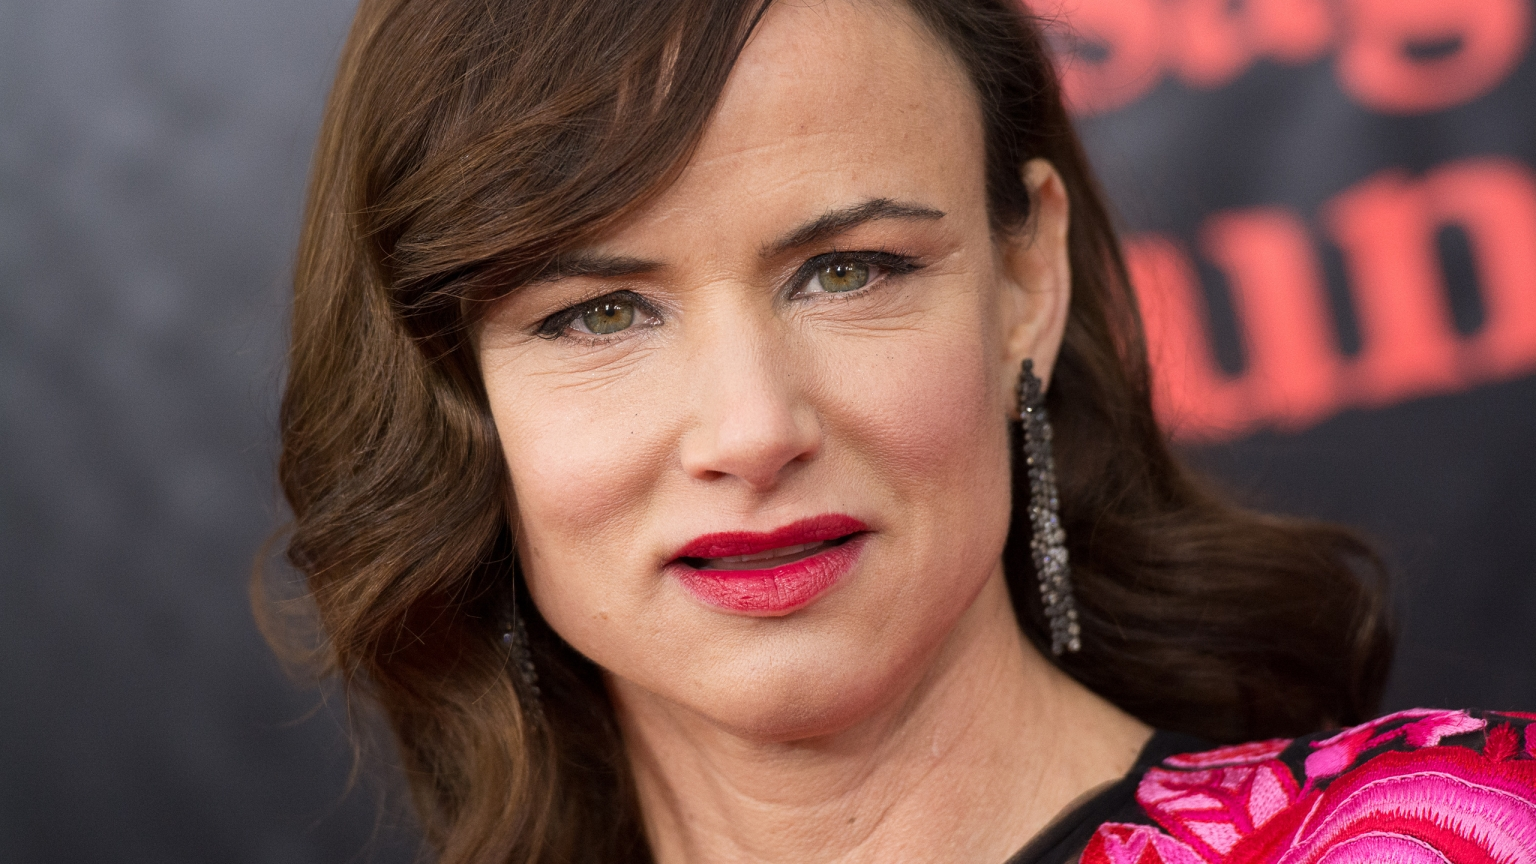 Beautiful Juliette Lewis for 1536 x 864 HDTV resolution